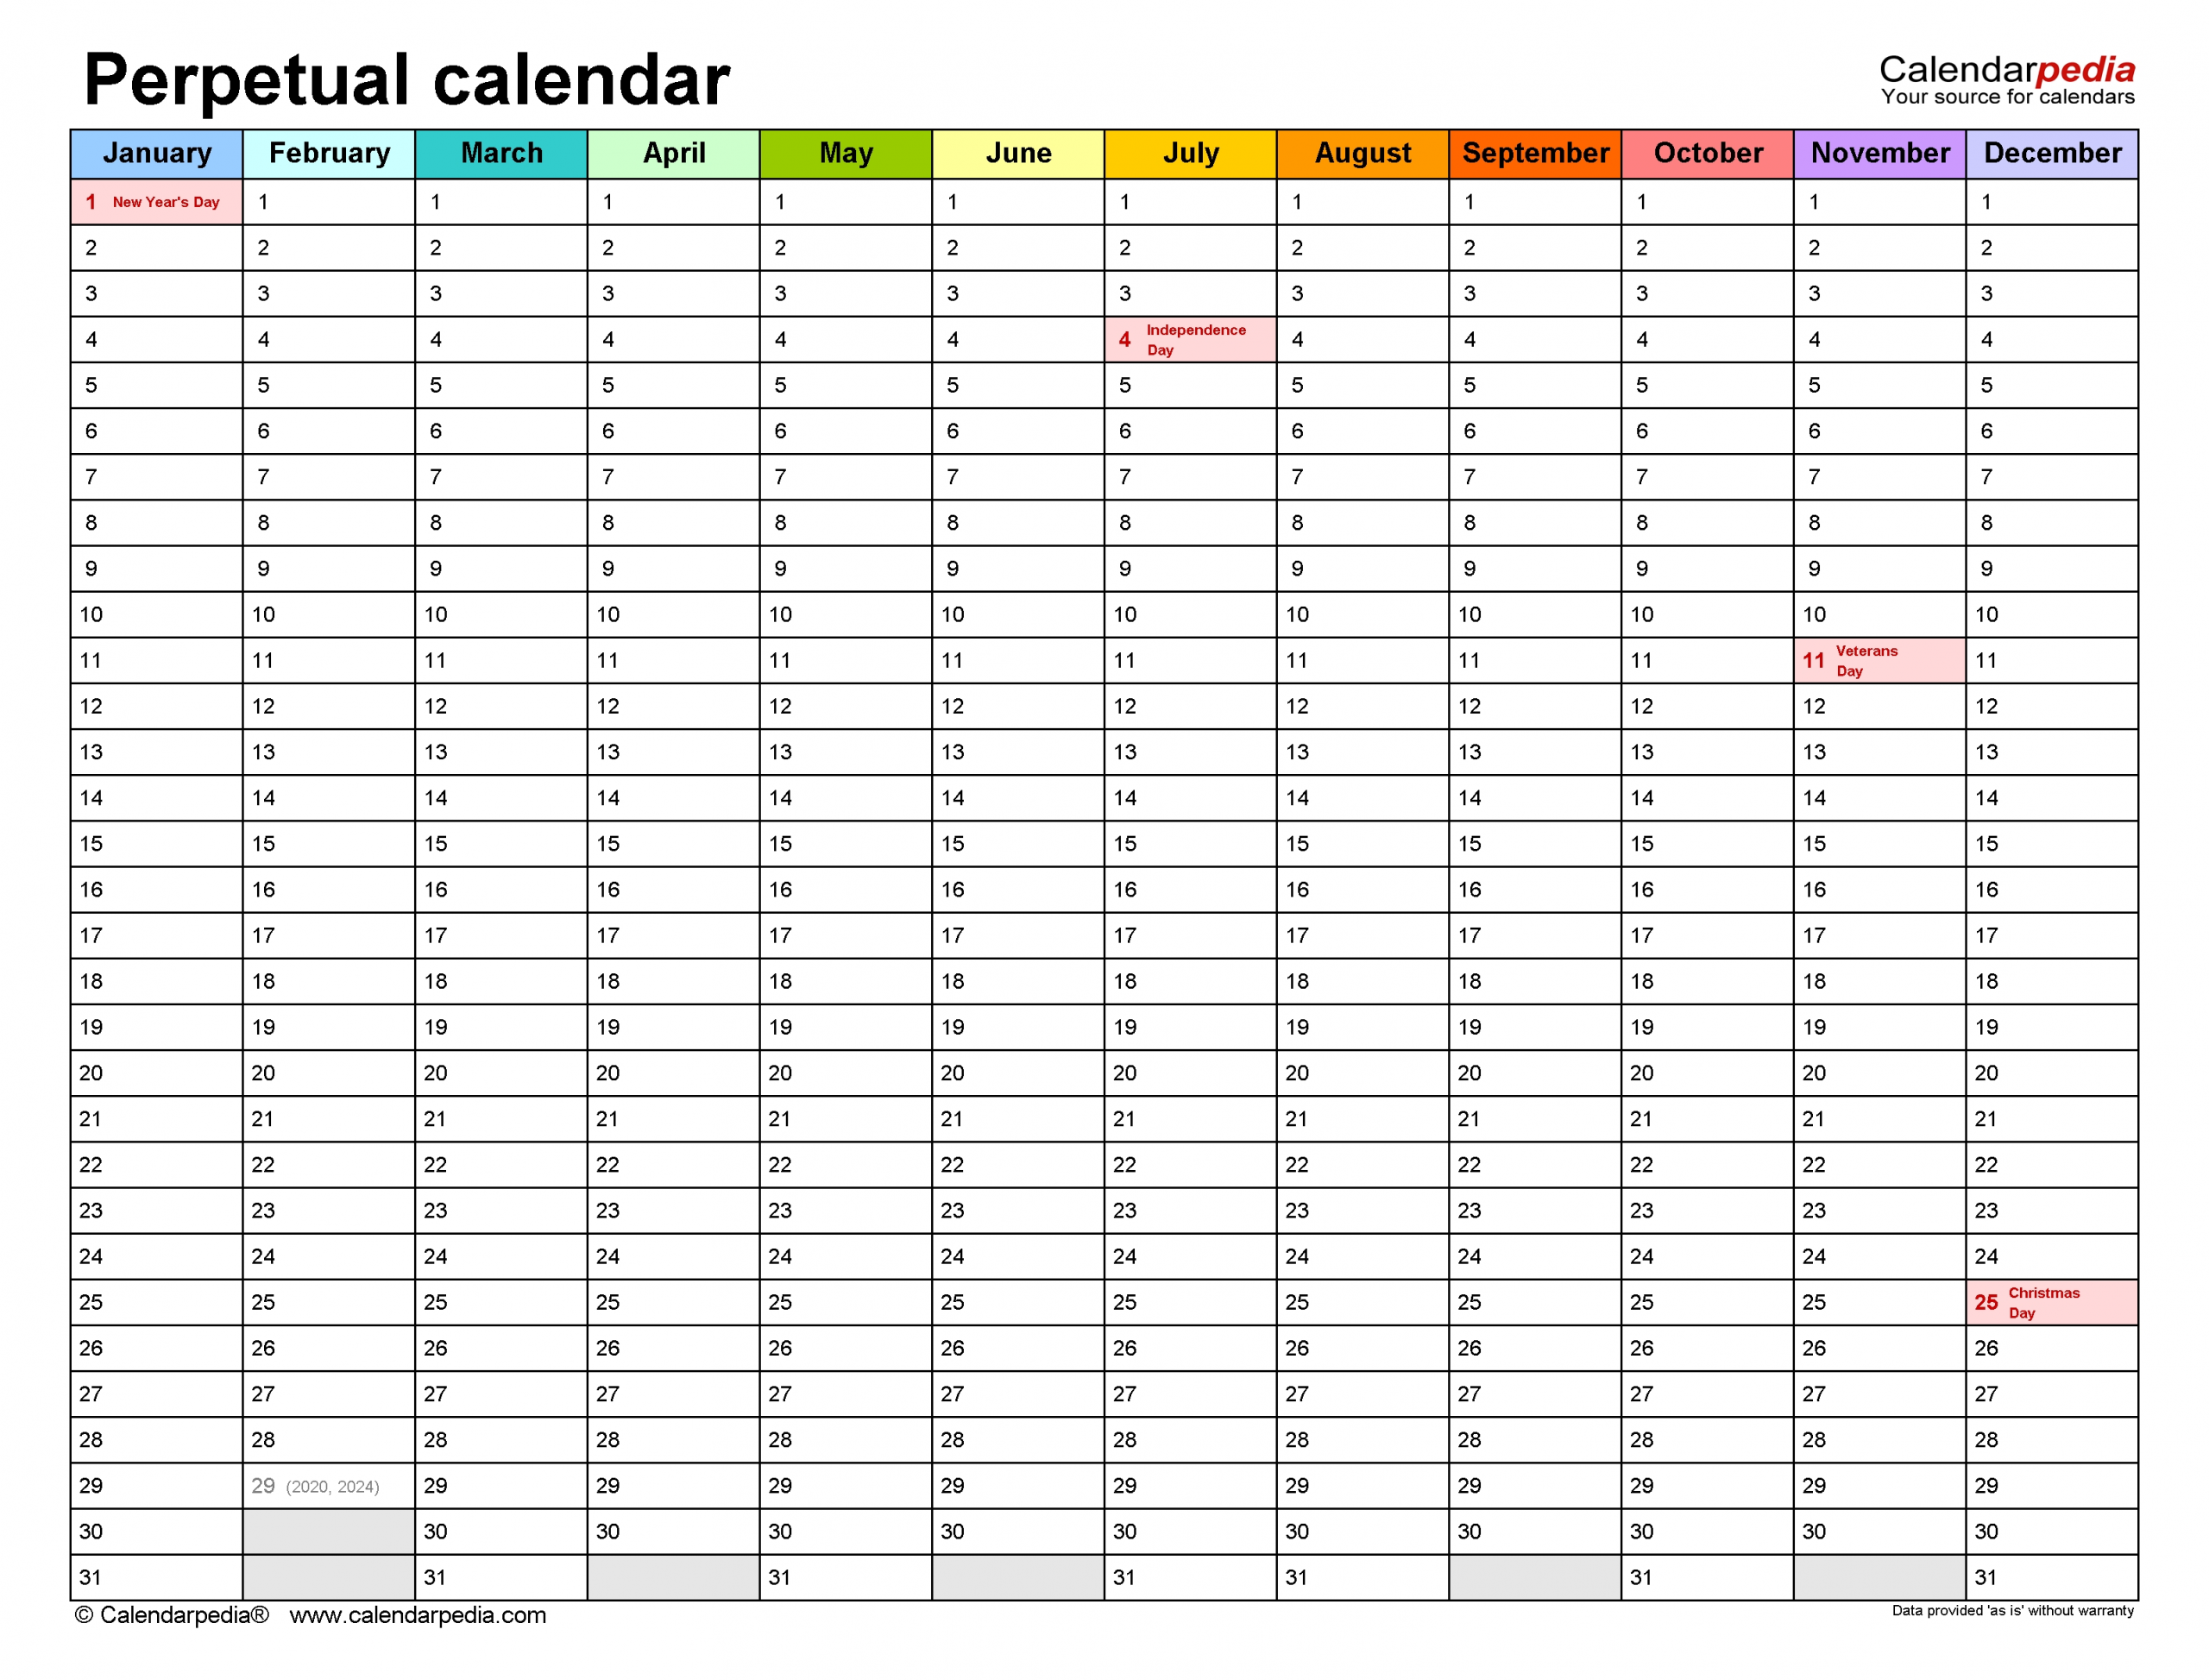 Perpetual Calendars - Free Printable Microsoft Word Templates intended for Printable Template For Perpetual Calendar